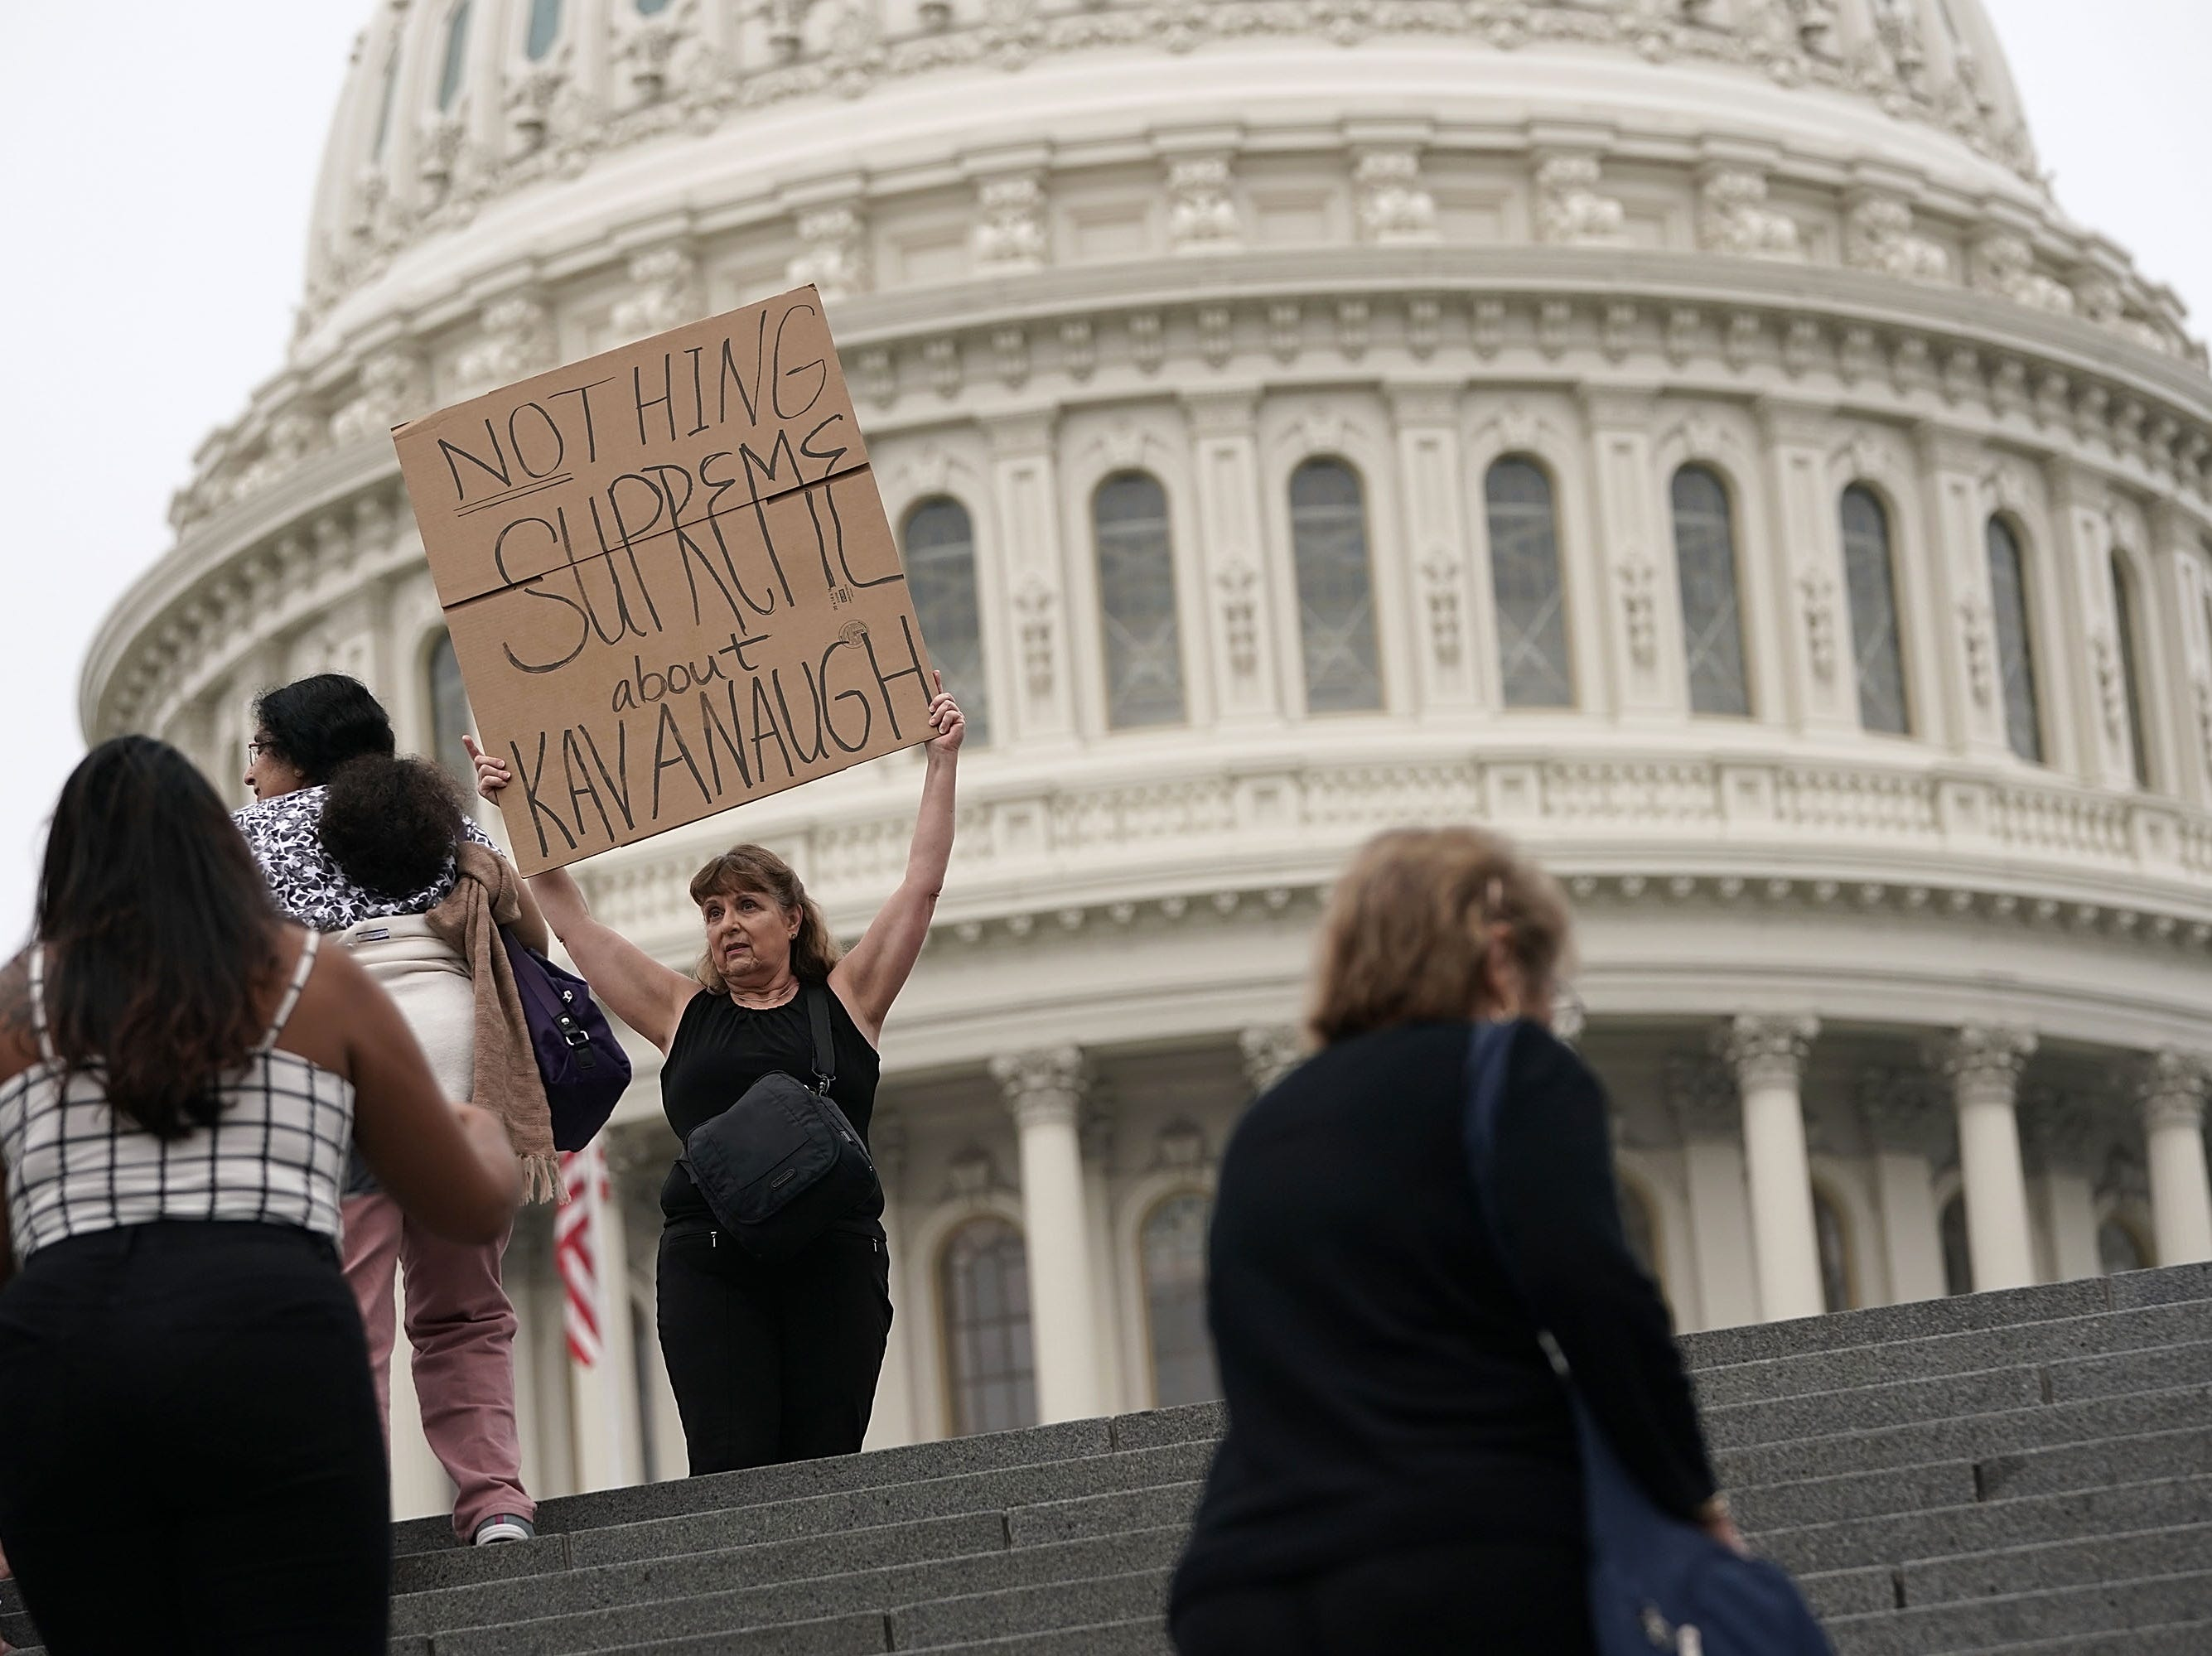 WASHINGTON, DC - OCTOBER 06:  A demonstrator holds up a sign during a protest against the confirmation of Supreme Court nominee Judge Brett Kavanaugh, outside of the Supreme Court, October 6, 2018 in Washington, DC. The Senate is set to hold a final vote Saturday evening to confirm the nomination of Judge Brett Kavanaugh to the U.S. Supreme Court. (Photo by Alex Wong/Getty Images)